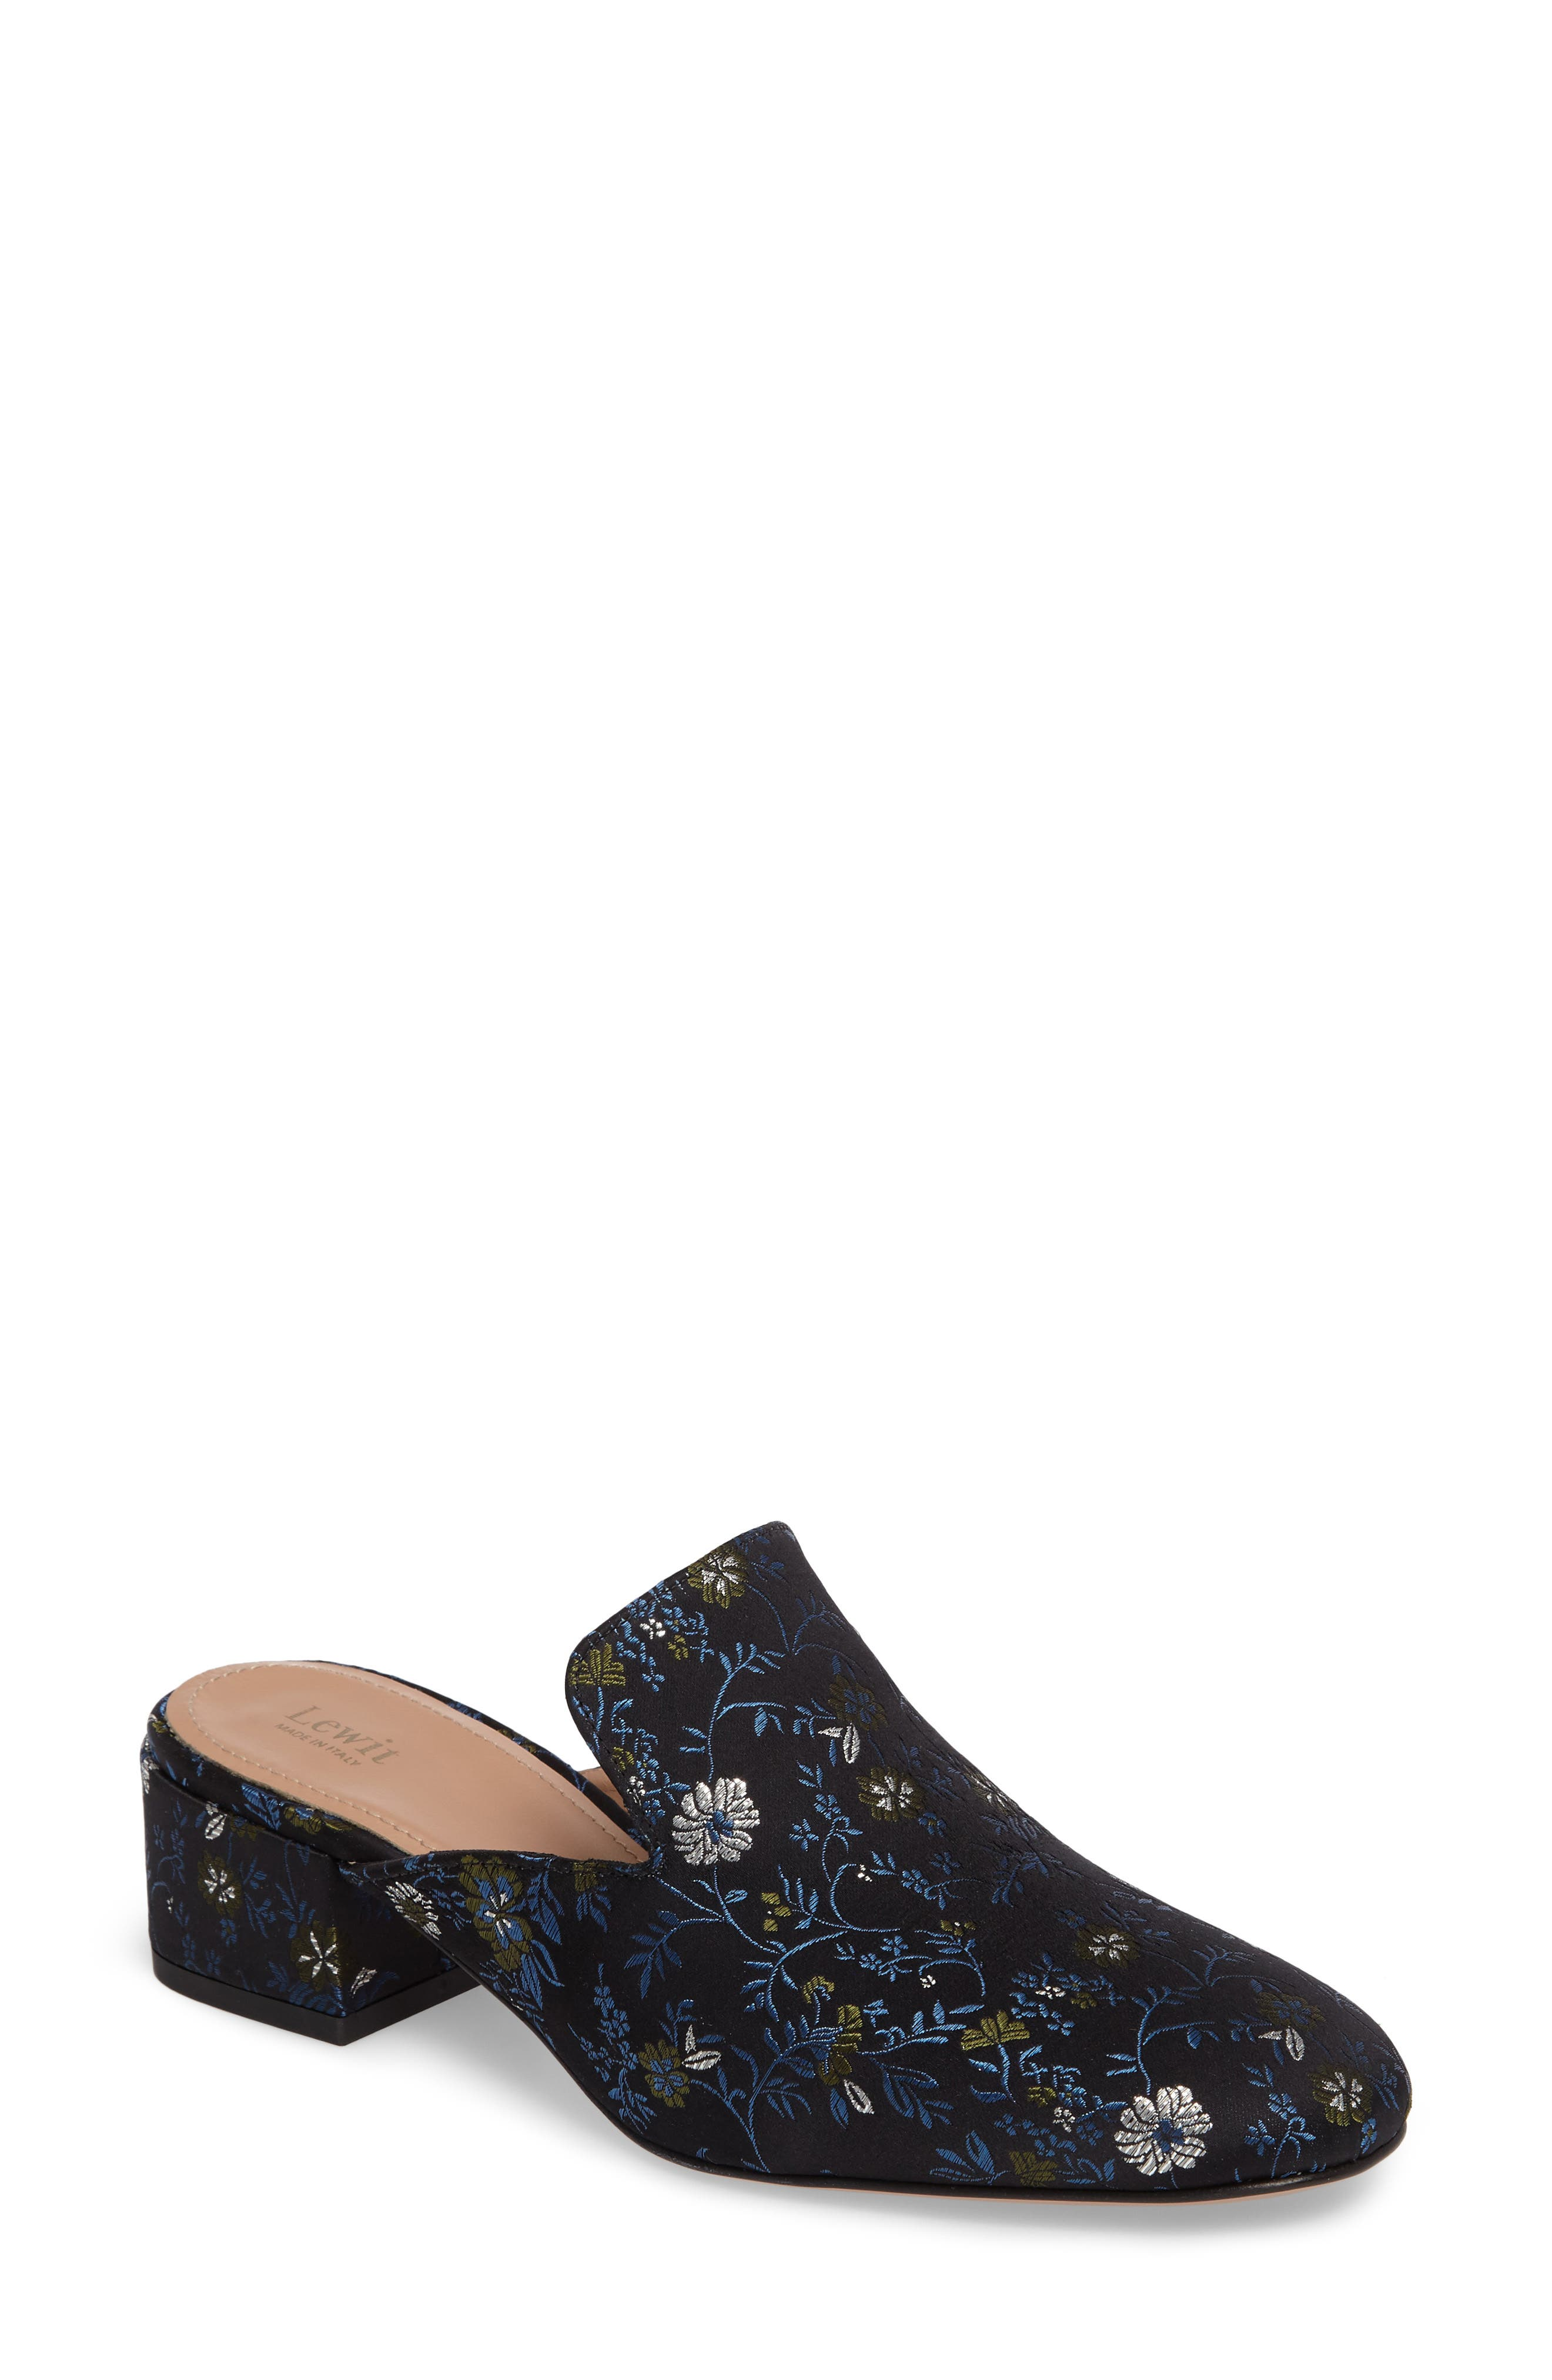 Bianca Embroidered Loafer Mule,                         Main,                         color, Black/ Blue Floral Fabric